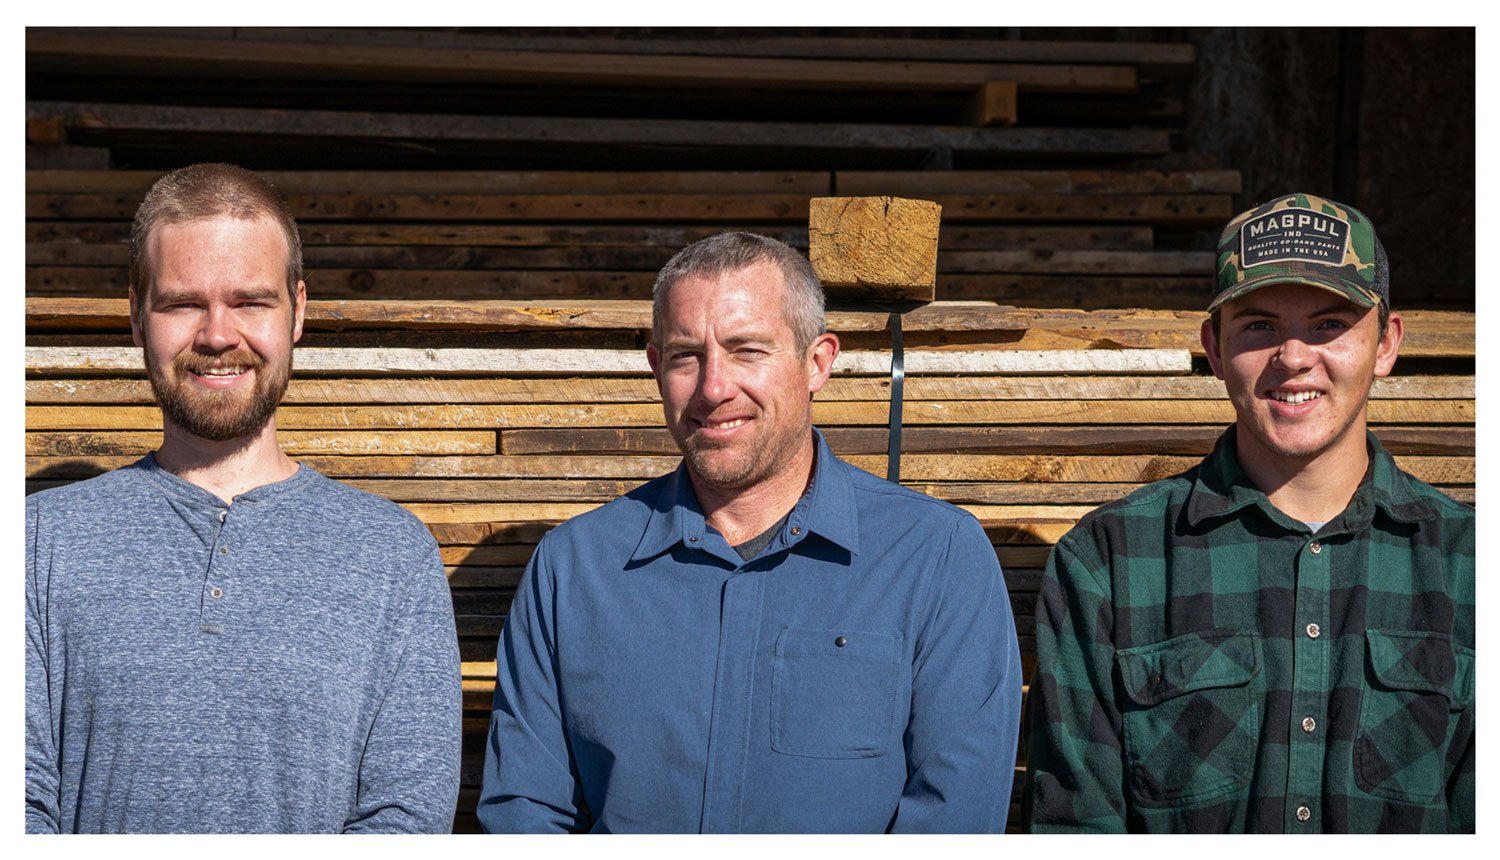 The Durango Wood Team—Mike, Ryan, and Caleb